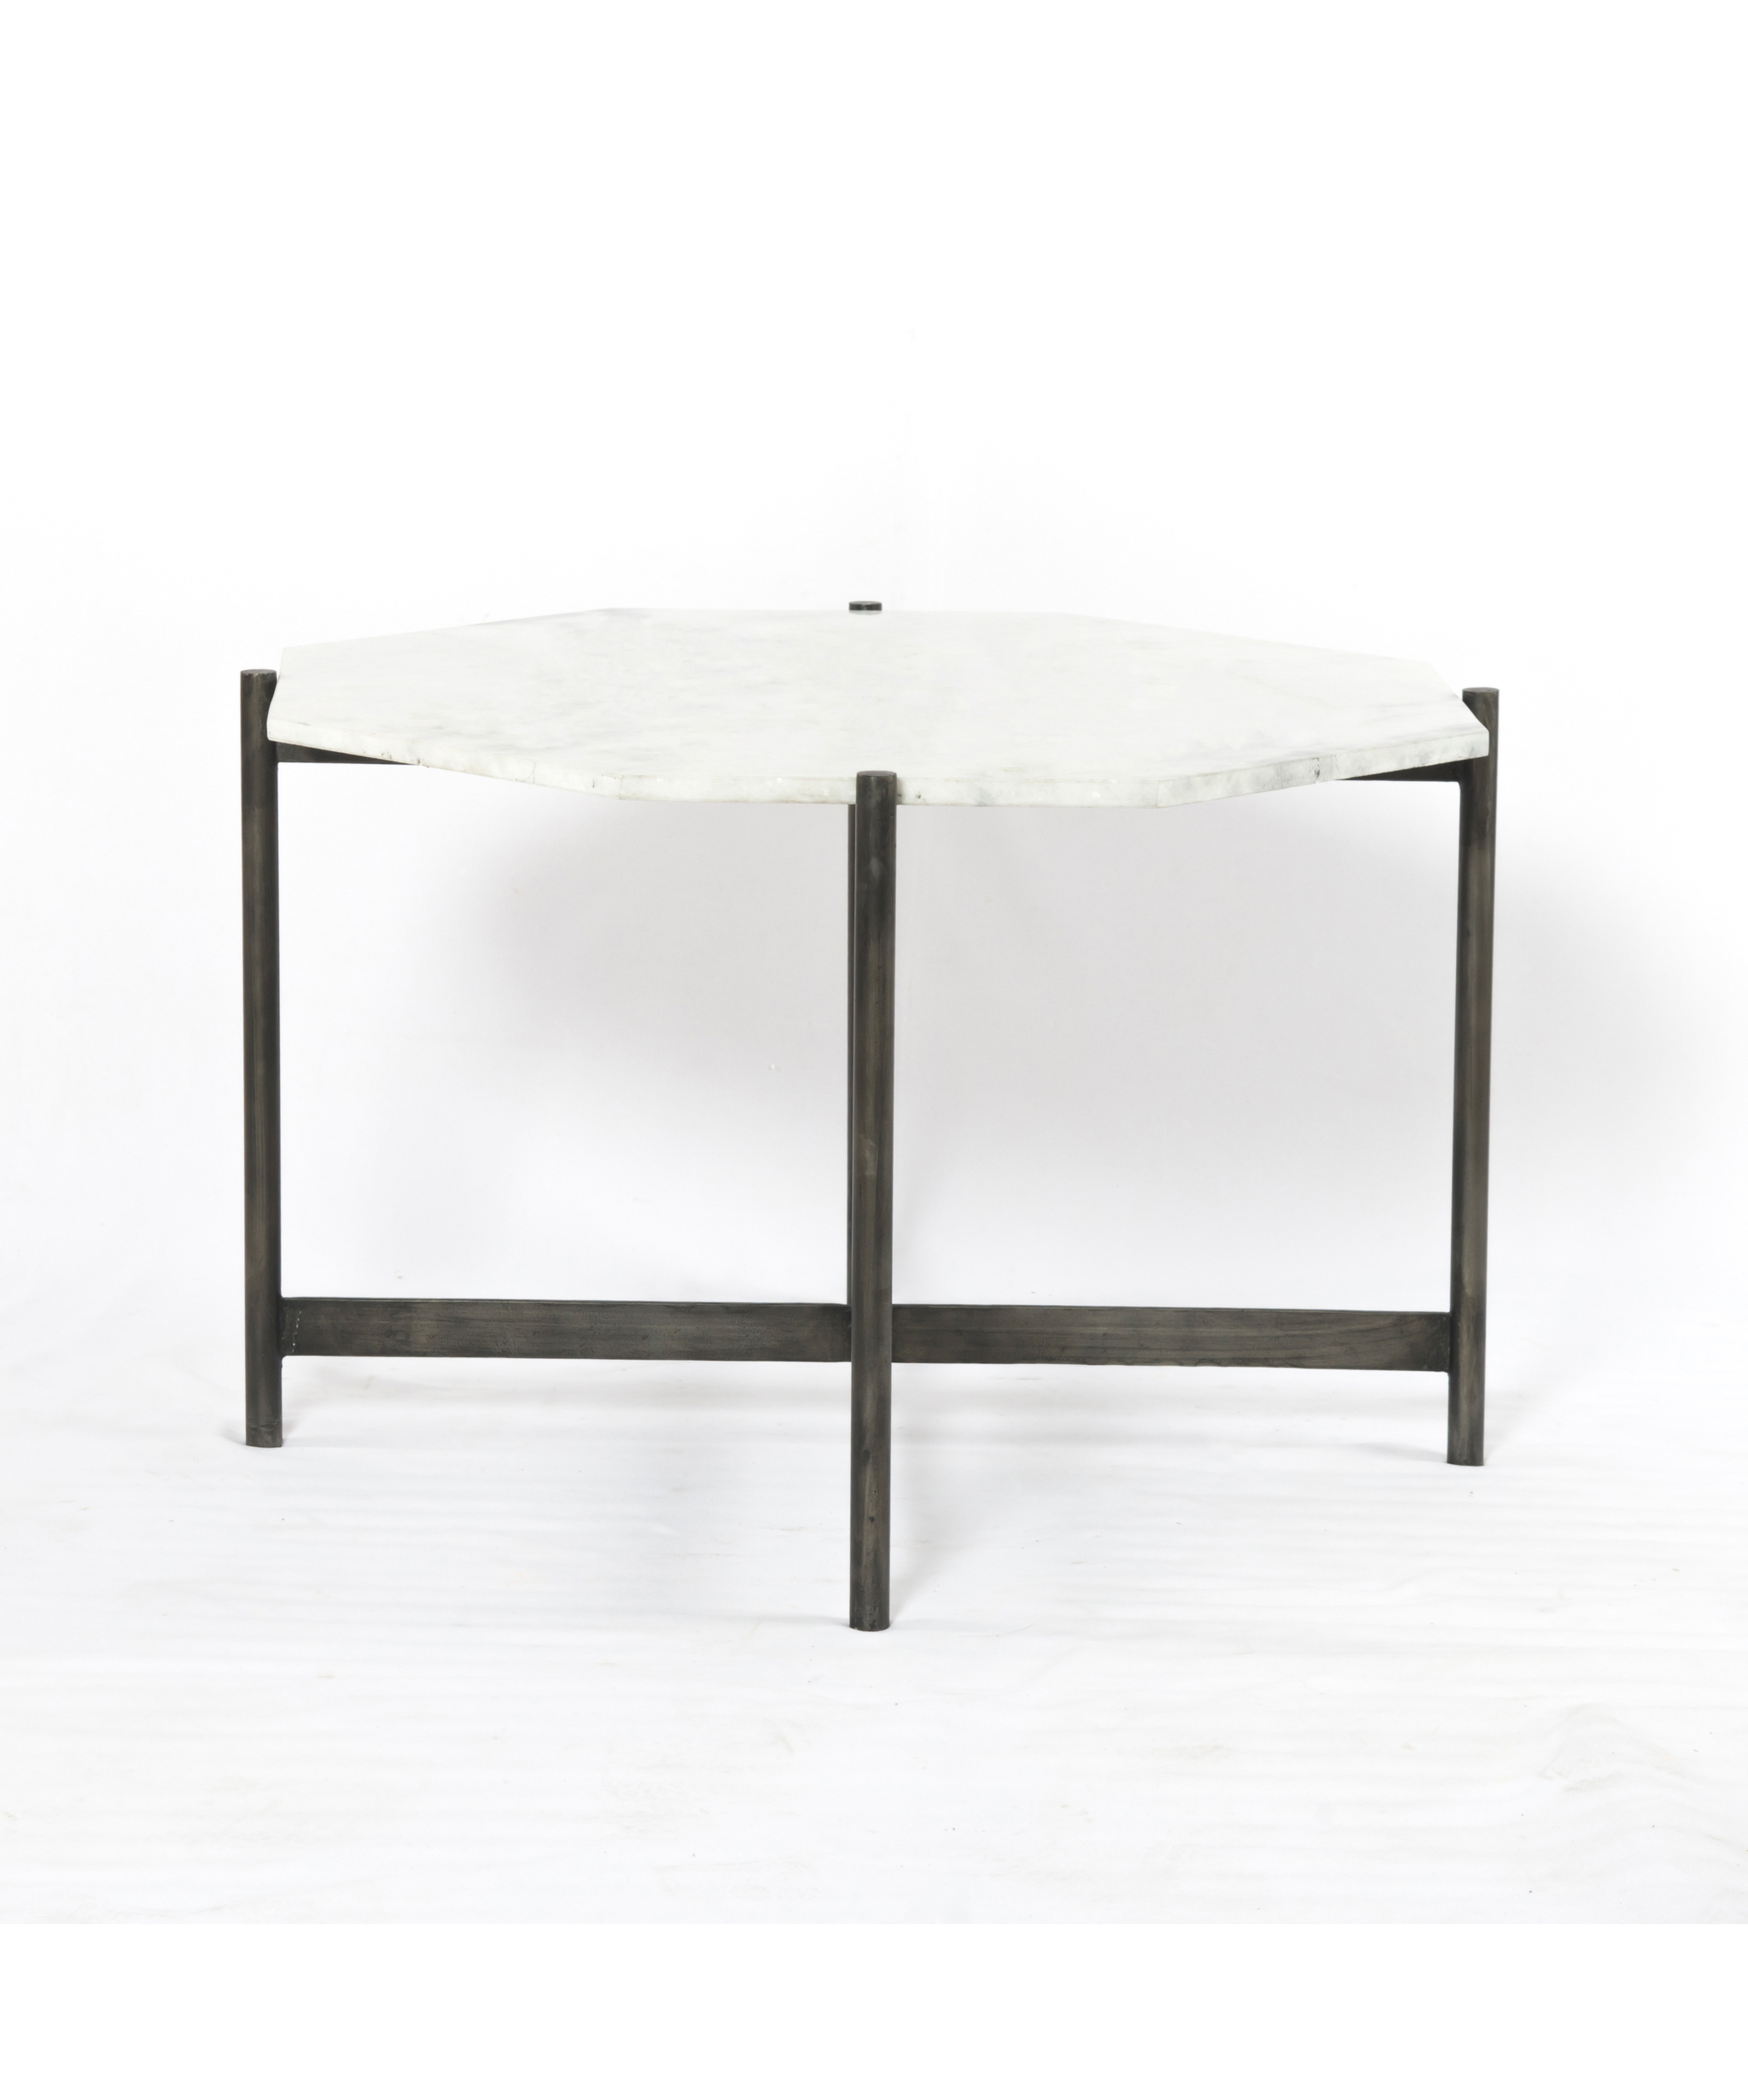 octagonal marble accent table black kids bedside glass legs silver mirrored coffee modern nightstand lamps entrance corner foyer pier one furniture high pub with lamp attached